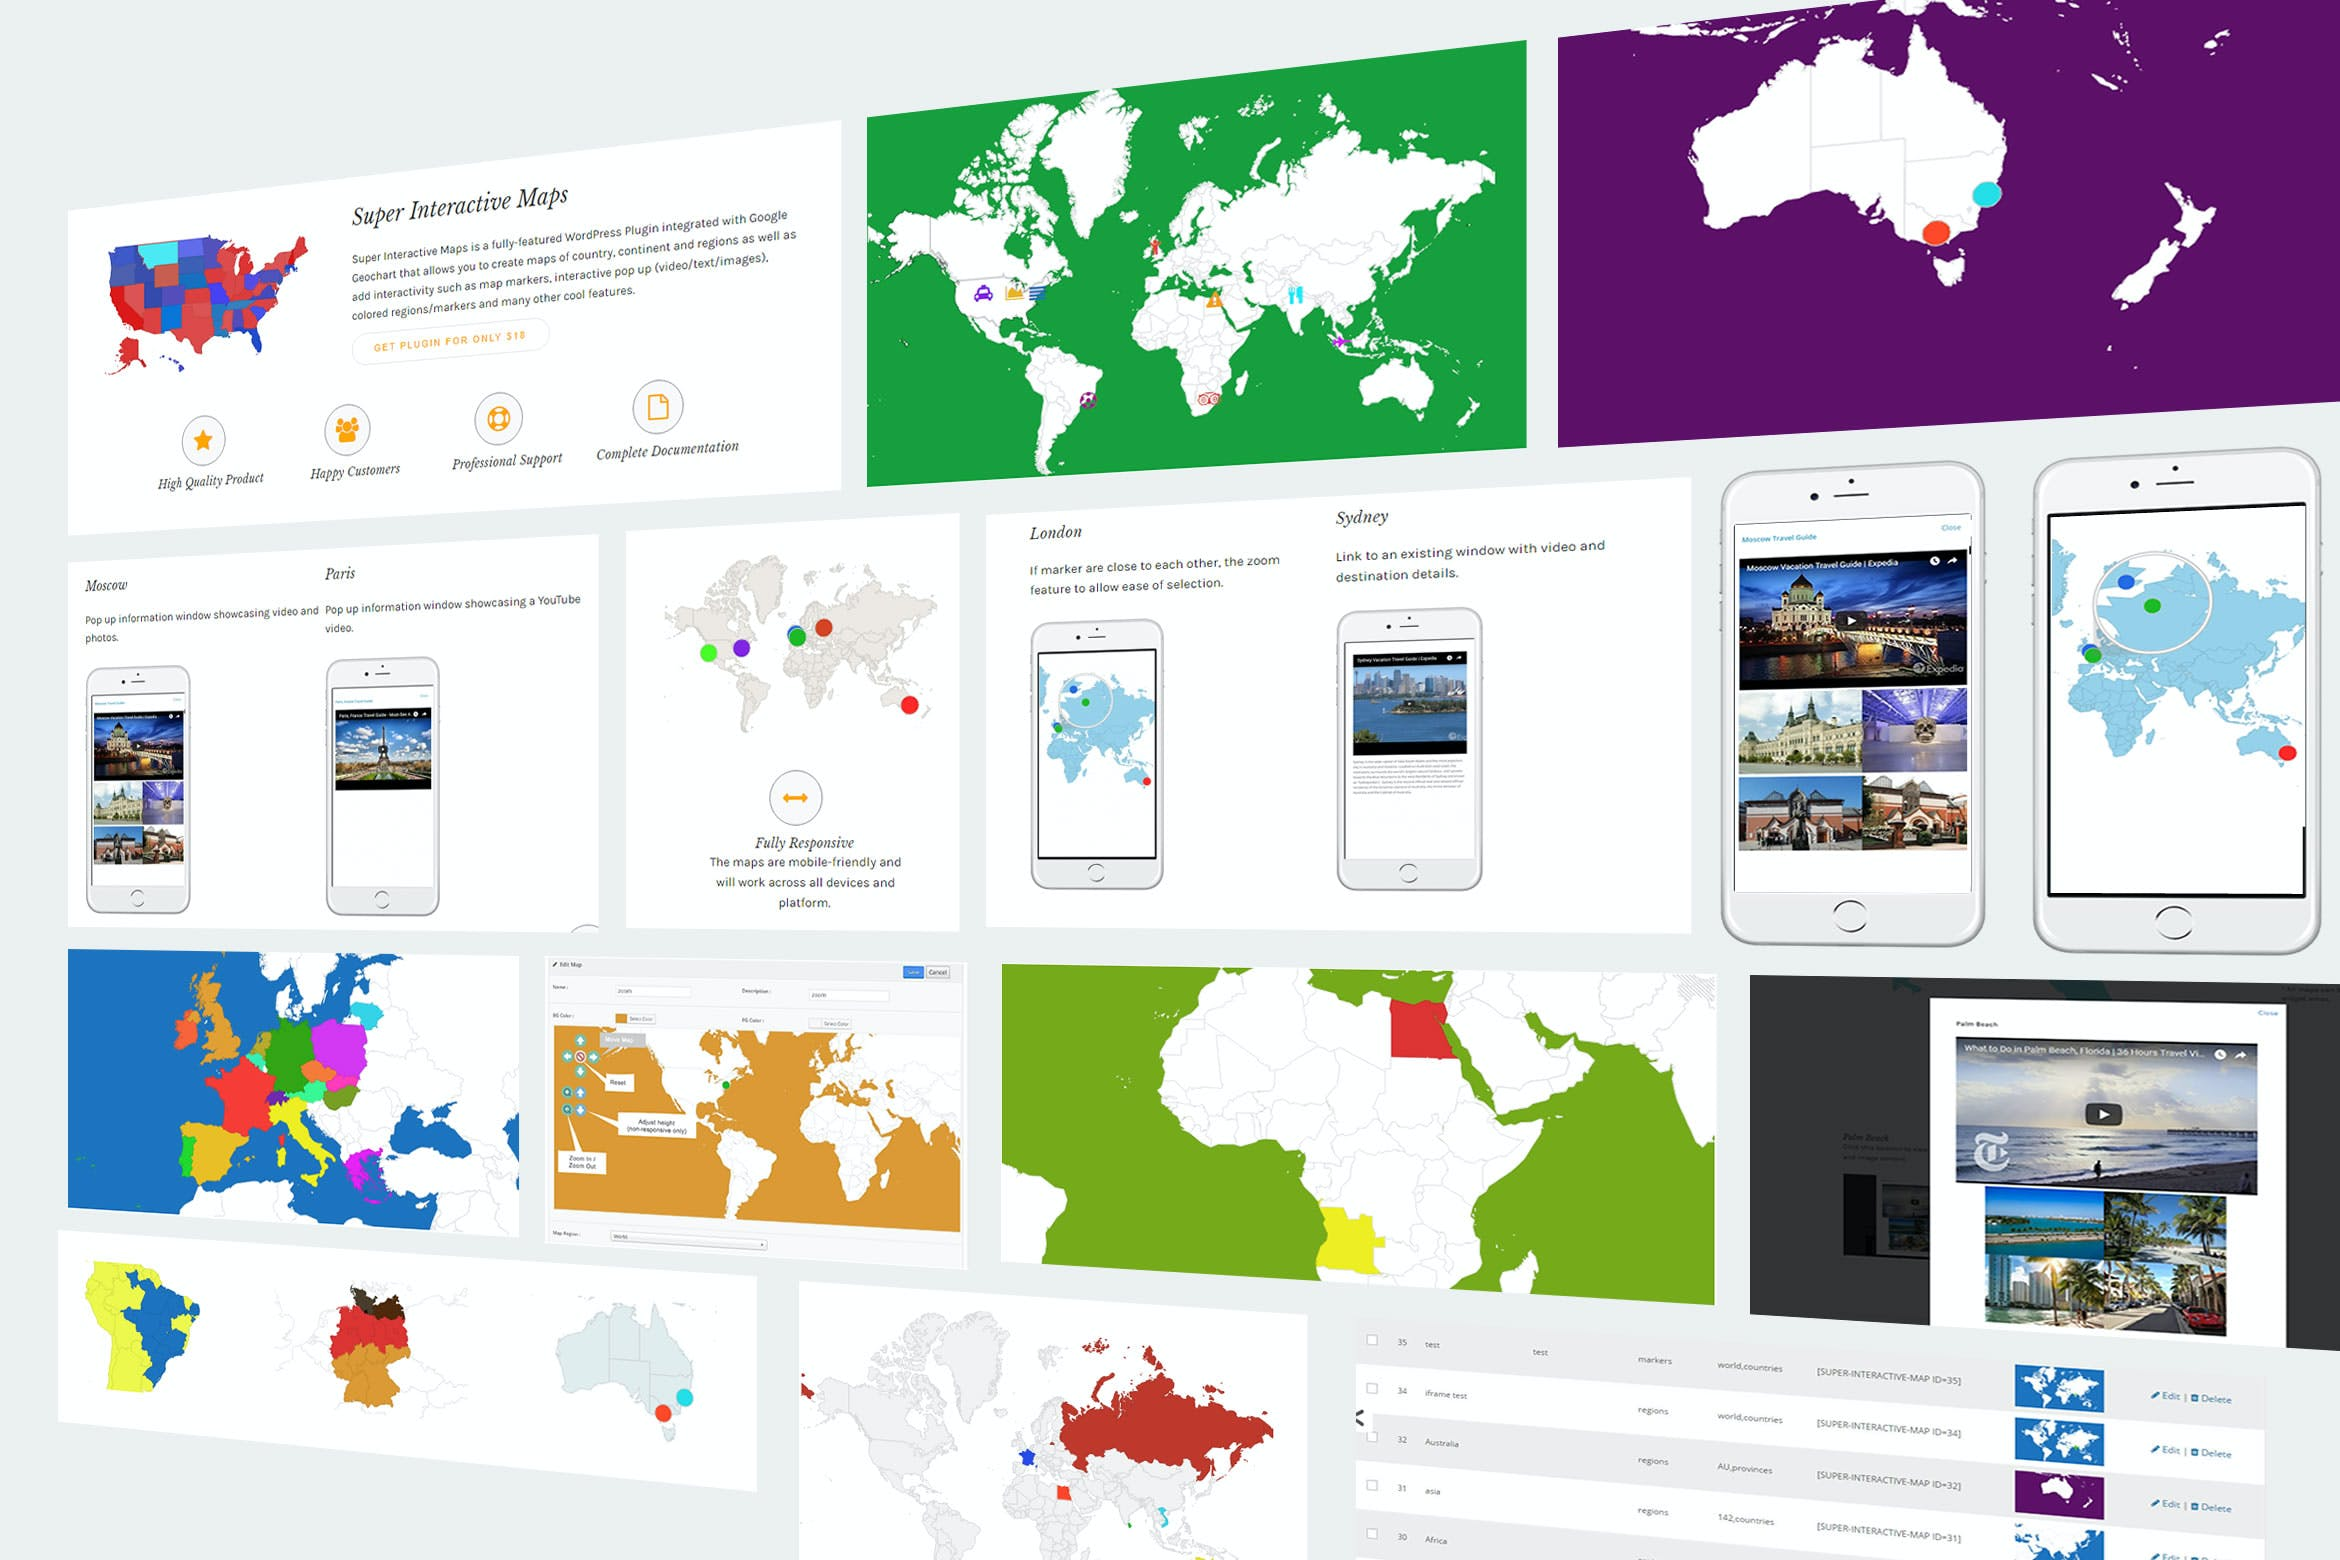 Super Interactive Maps by highwarden on Envato Elements